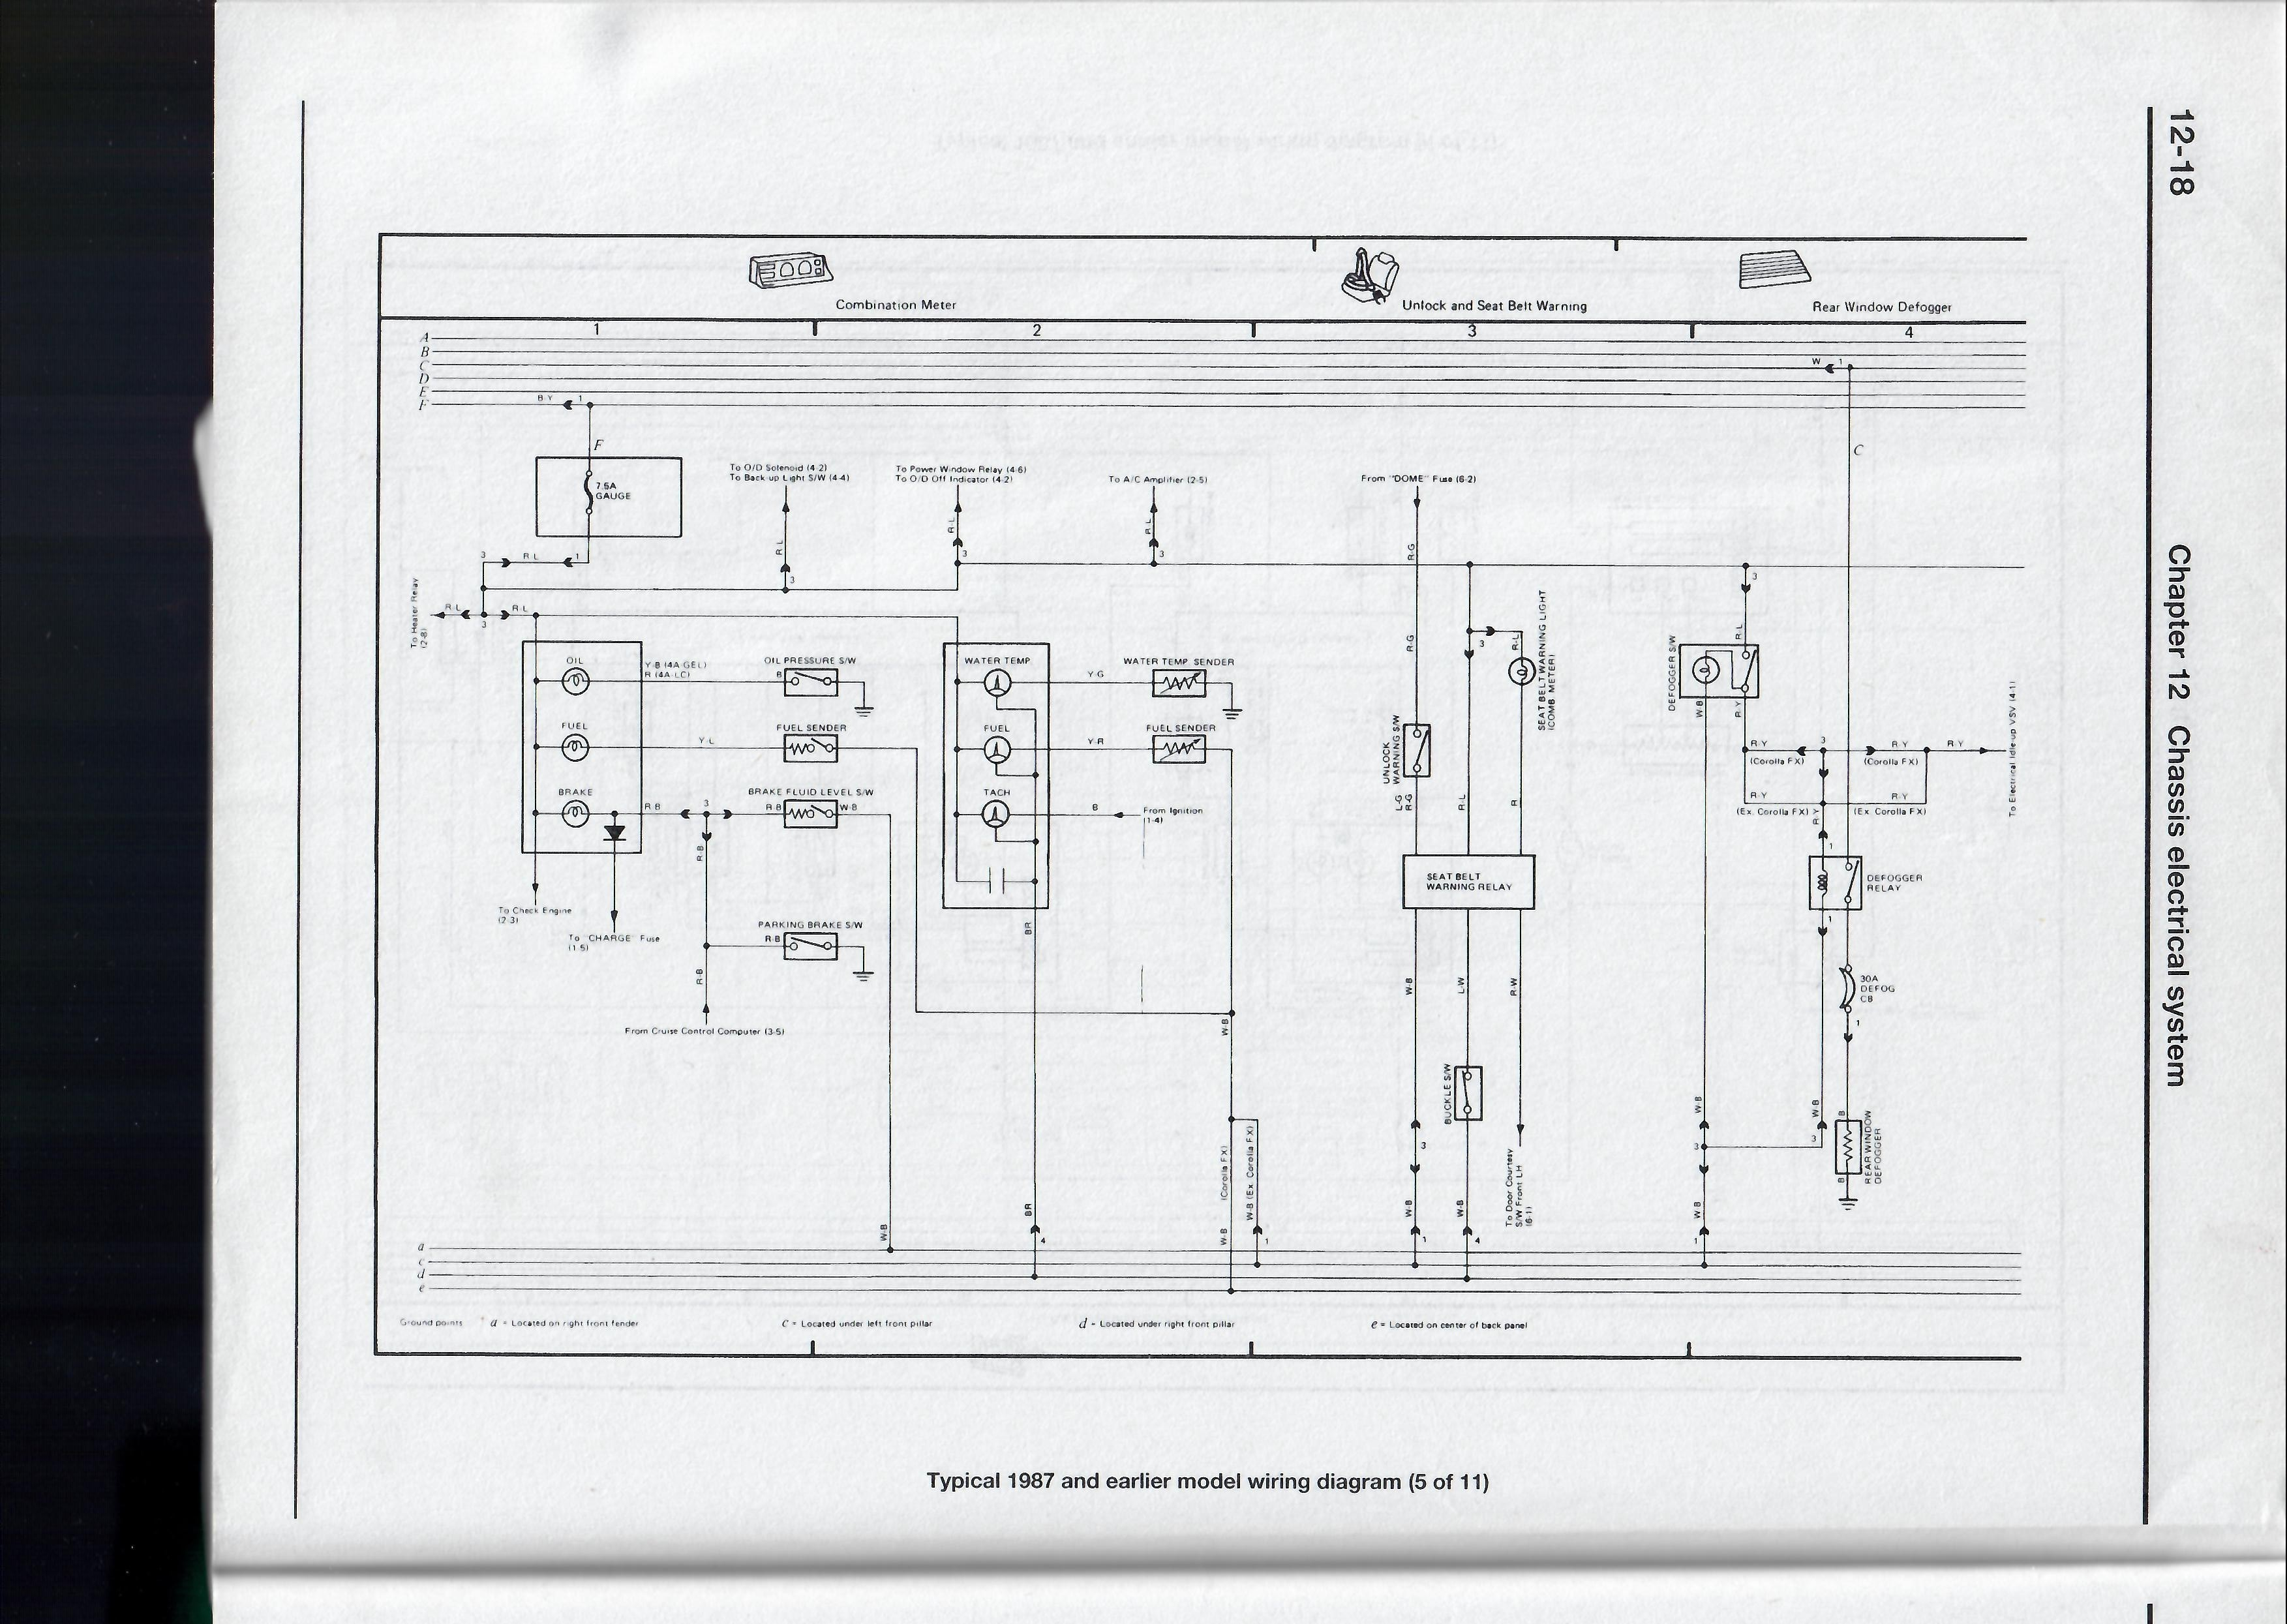 I Need Electrical Wiring Diagram And Service Manual Of E80 Corolla 86 Toyota Pakwheels Forums